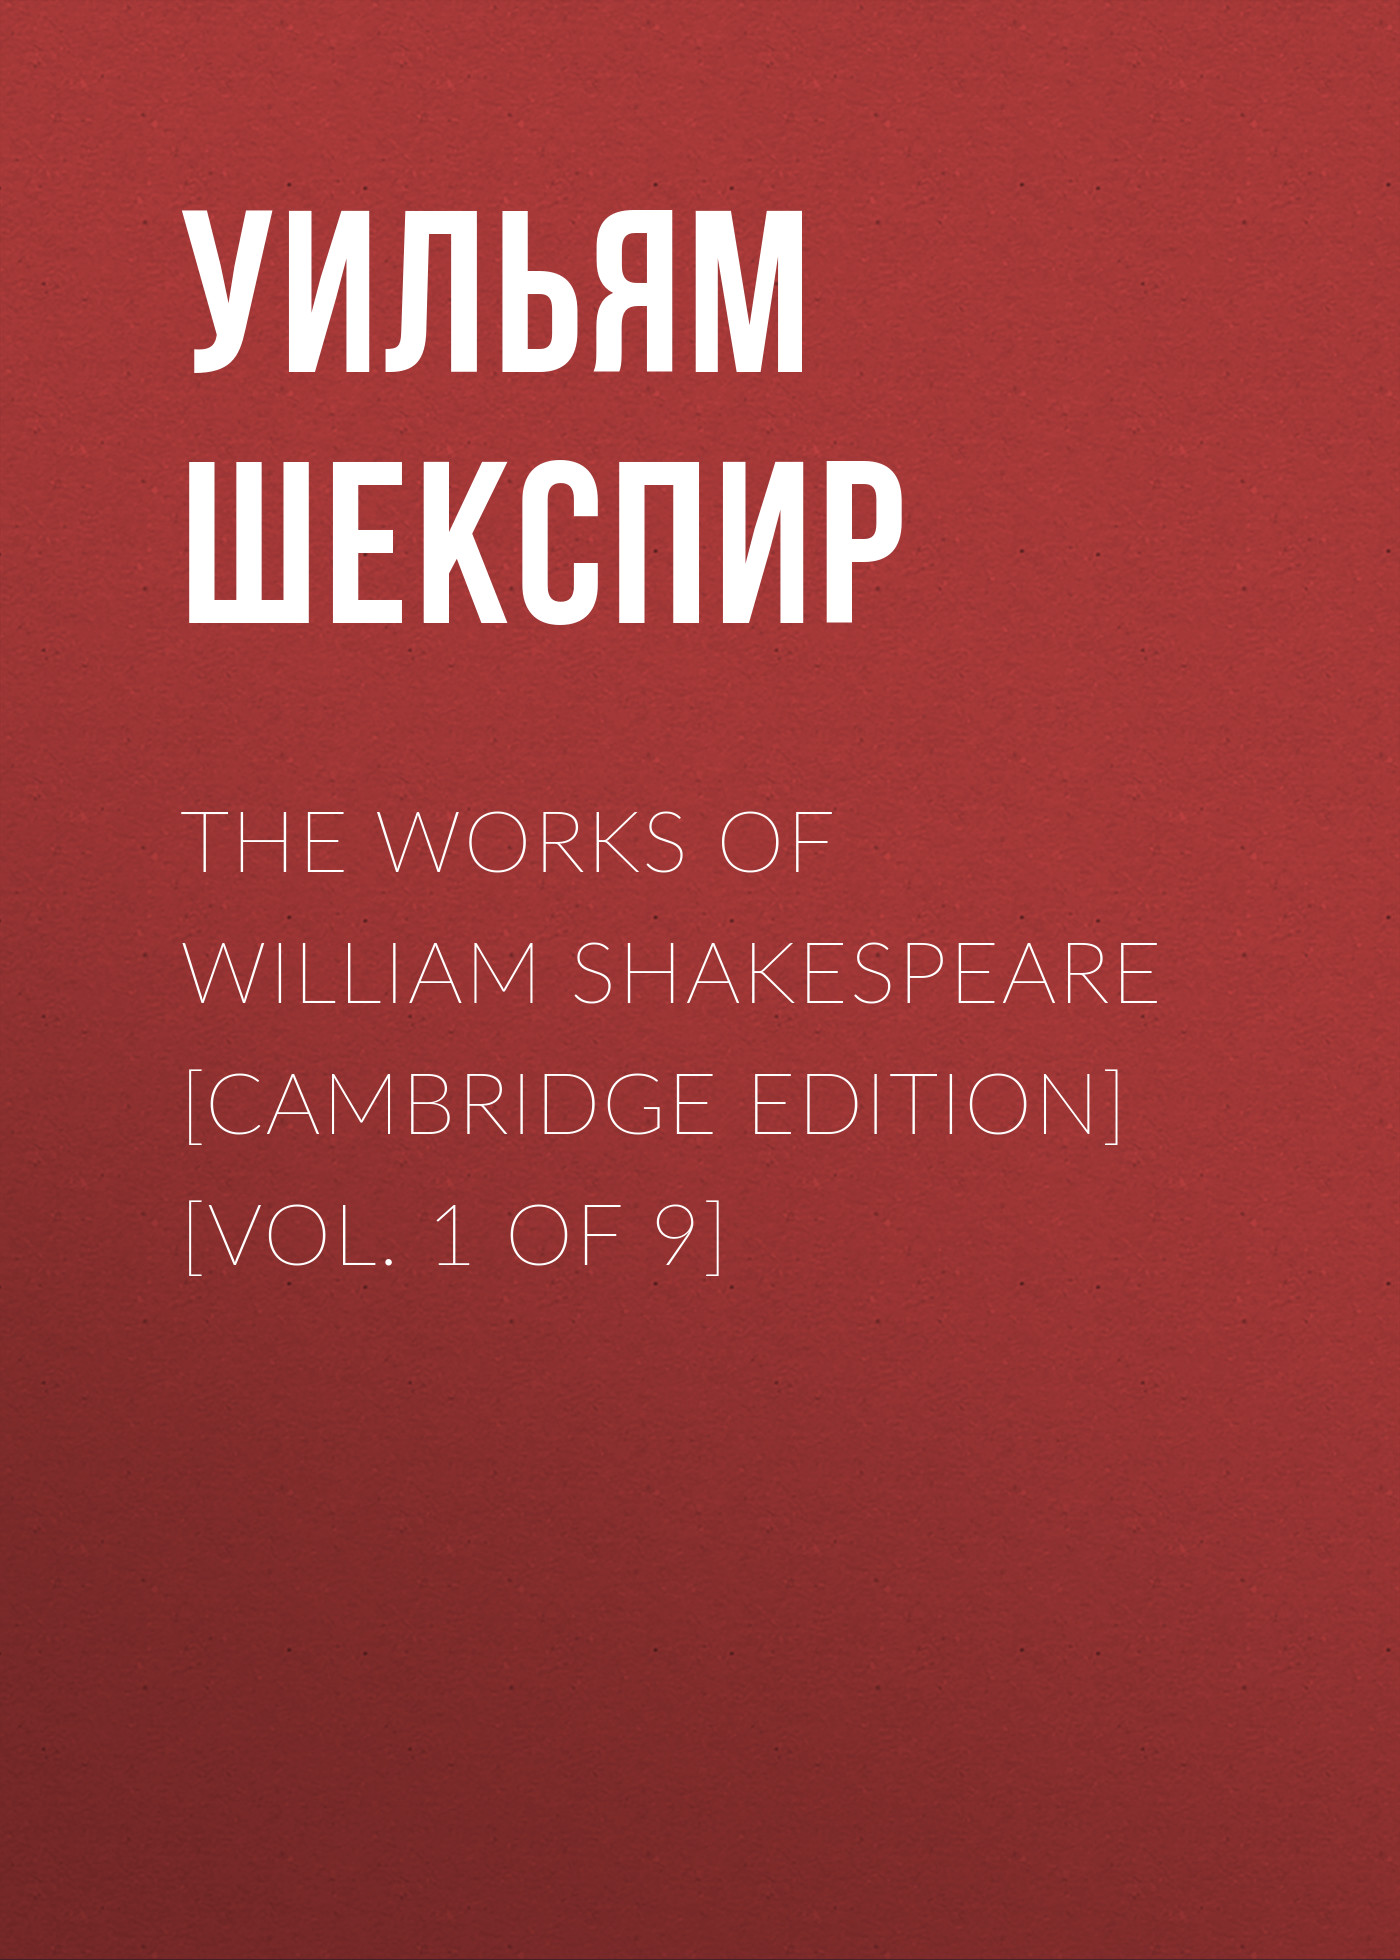 Уильям Шекспир The Works of William Shakespeare [Cambridge Edition] [Vol. 1 of 9] shakespeare lexicon